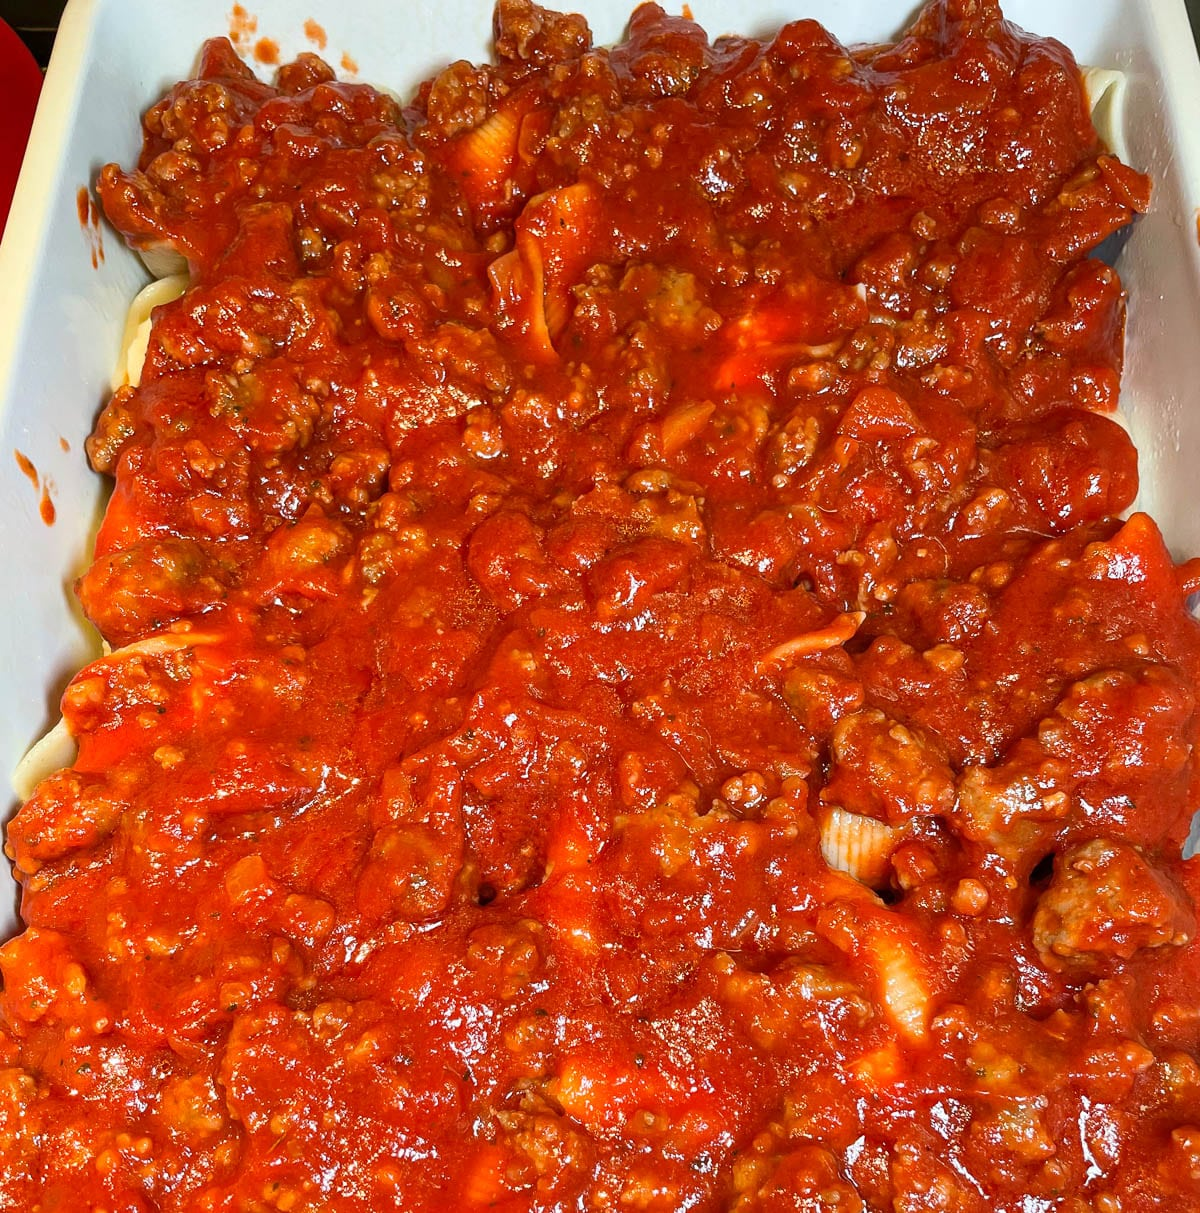 stuffed shells covered in meat sauce